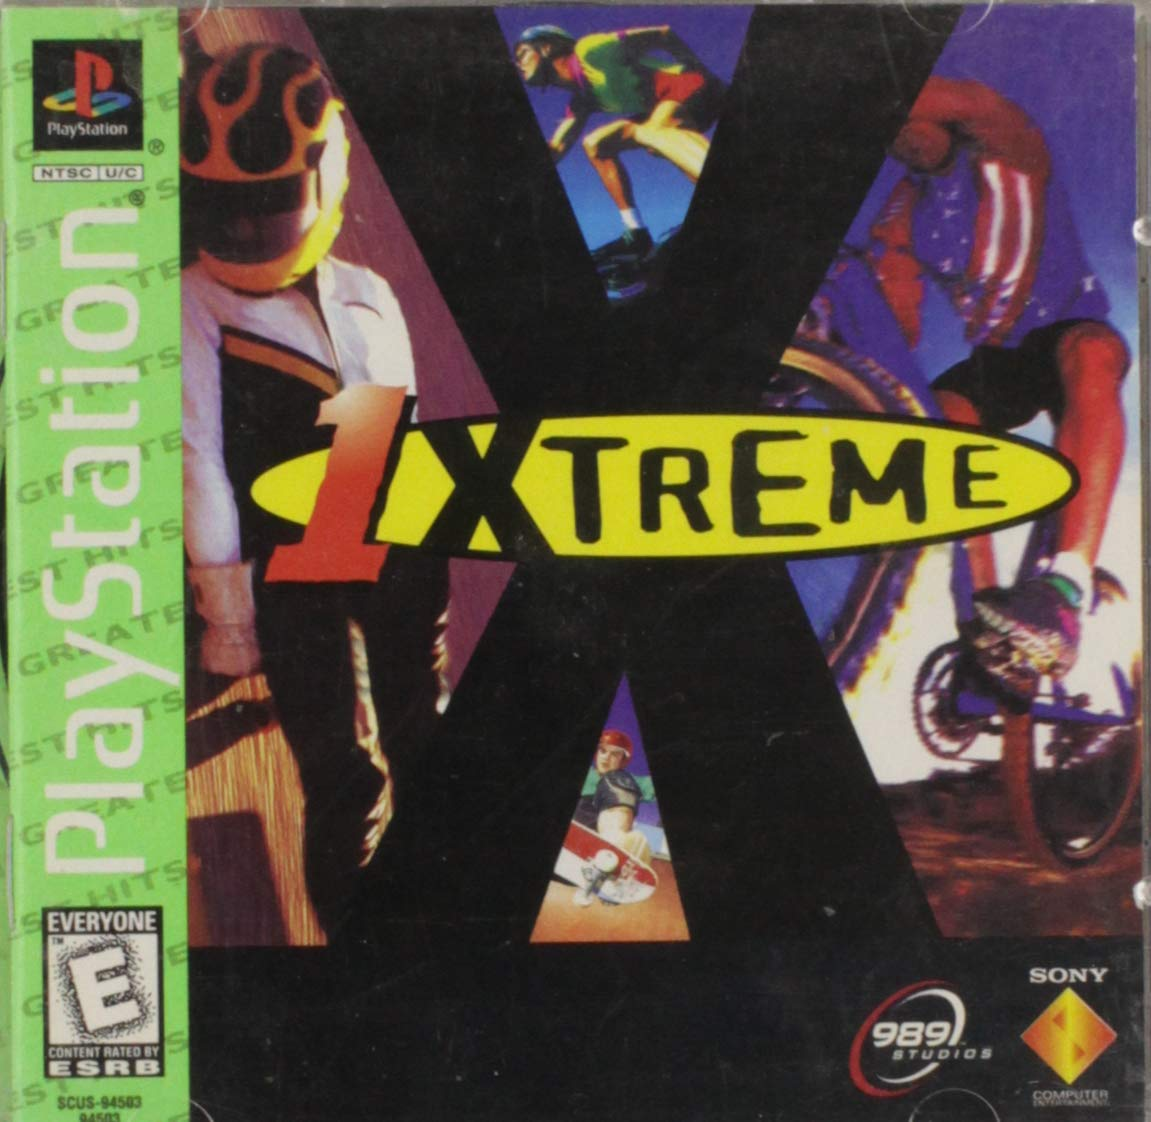 1Xtreme stats facts